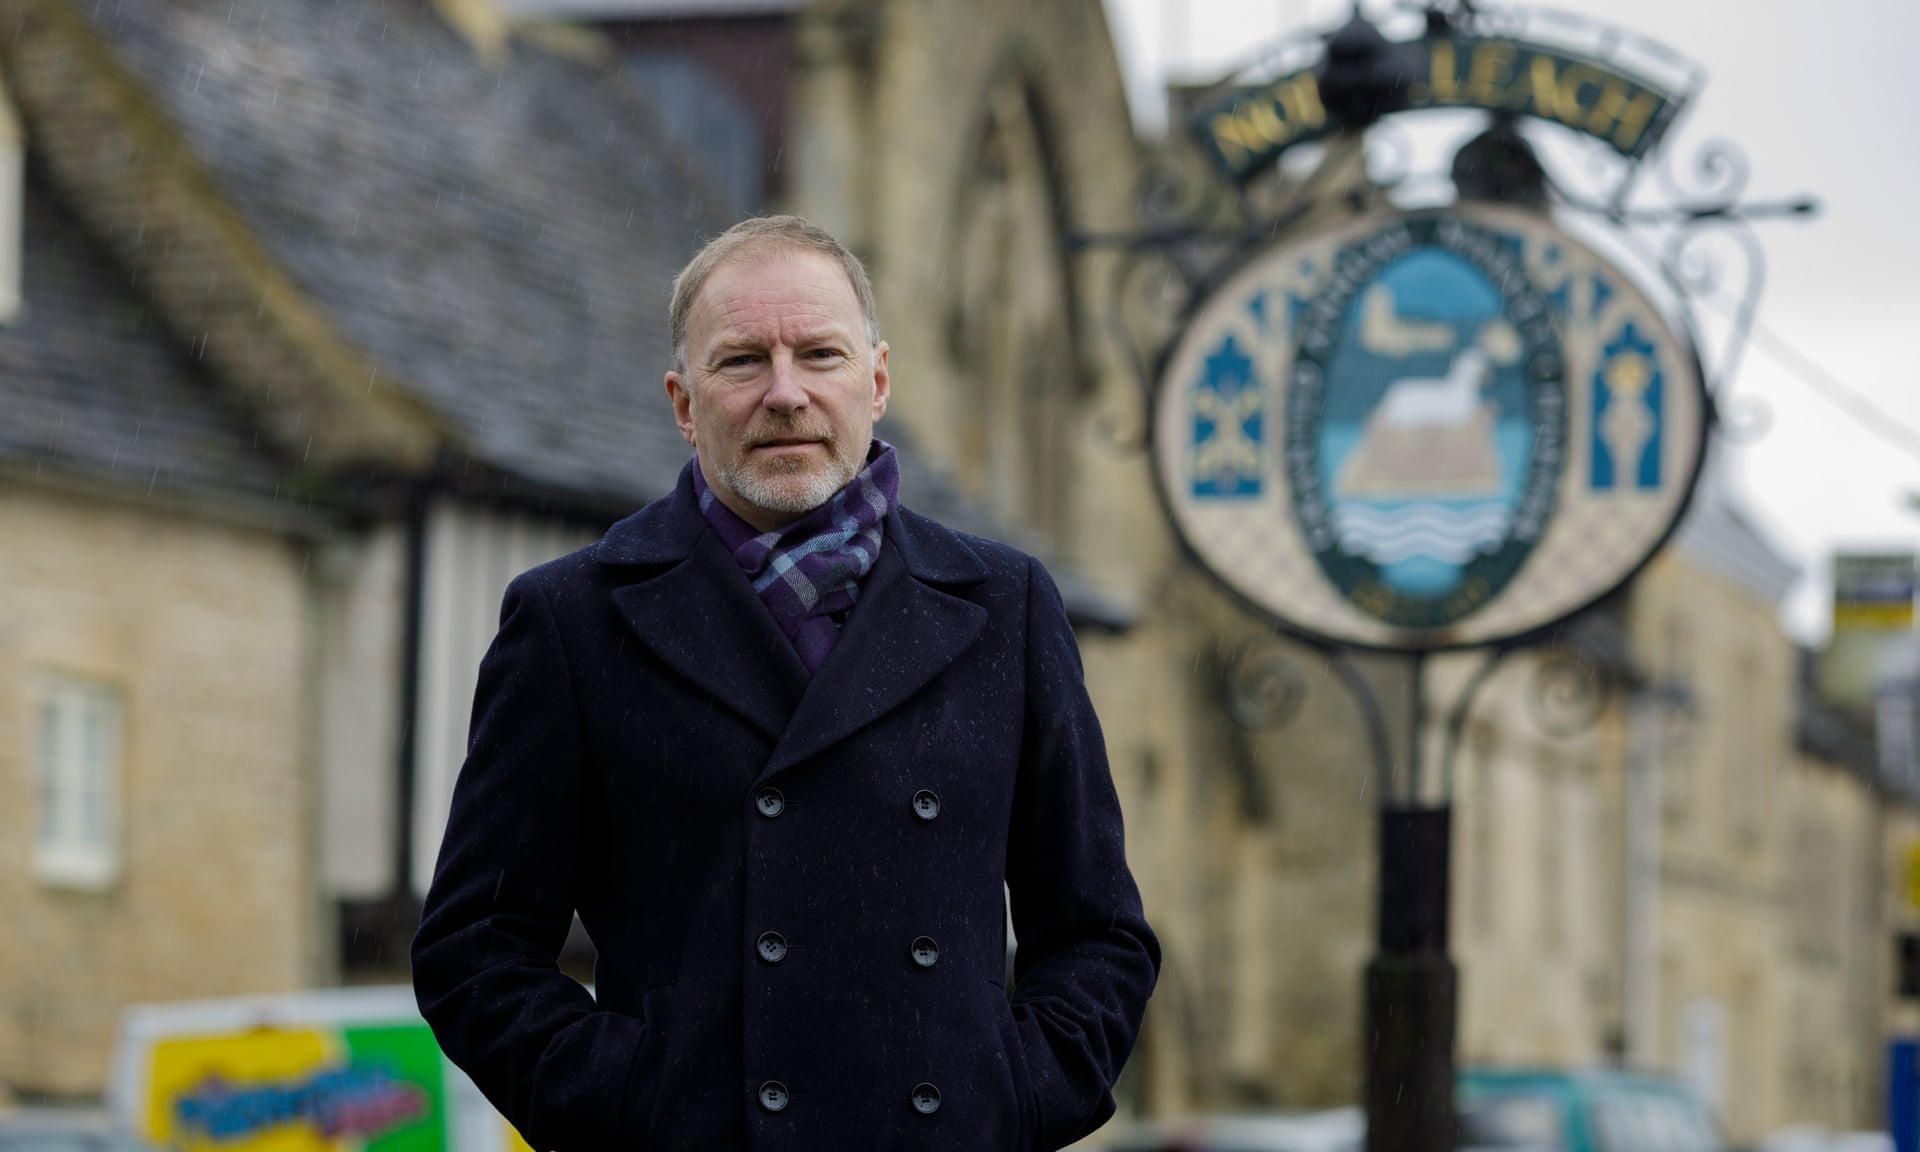 UPDATED: Liberal Democrats call for Stow Fair to be cancelled due to rising cases of Covid-19